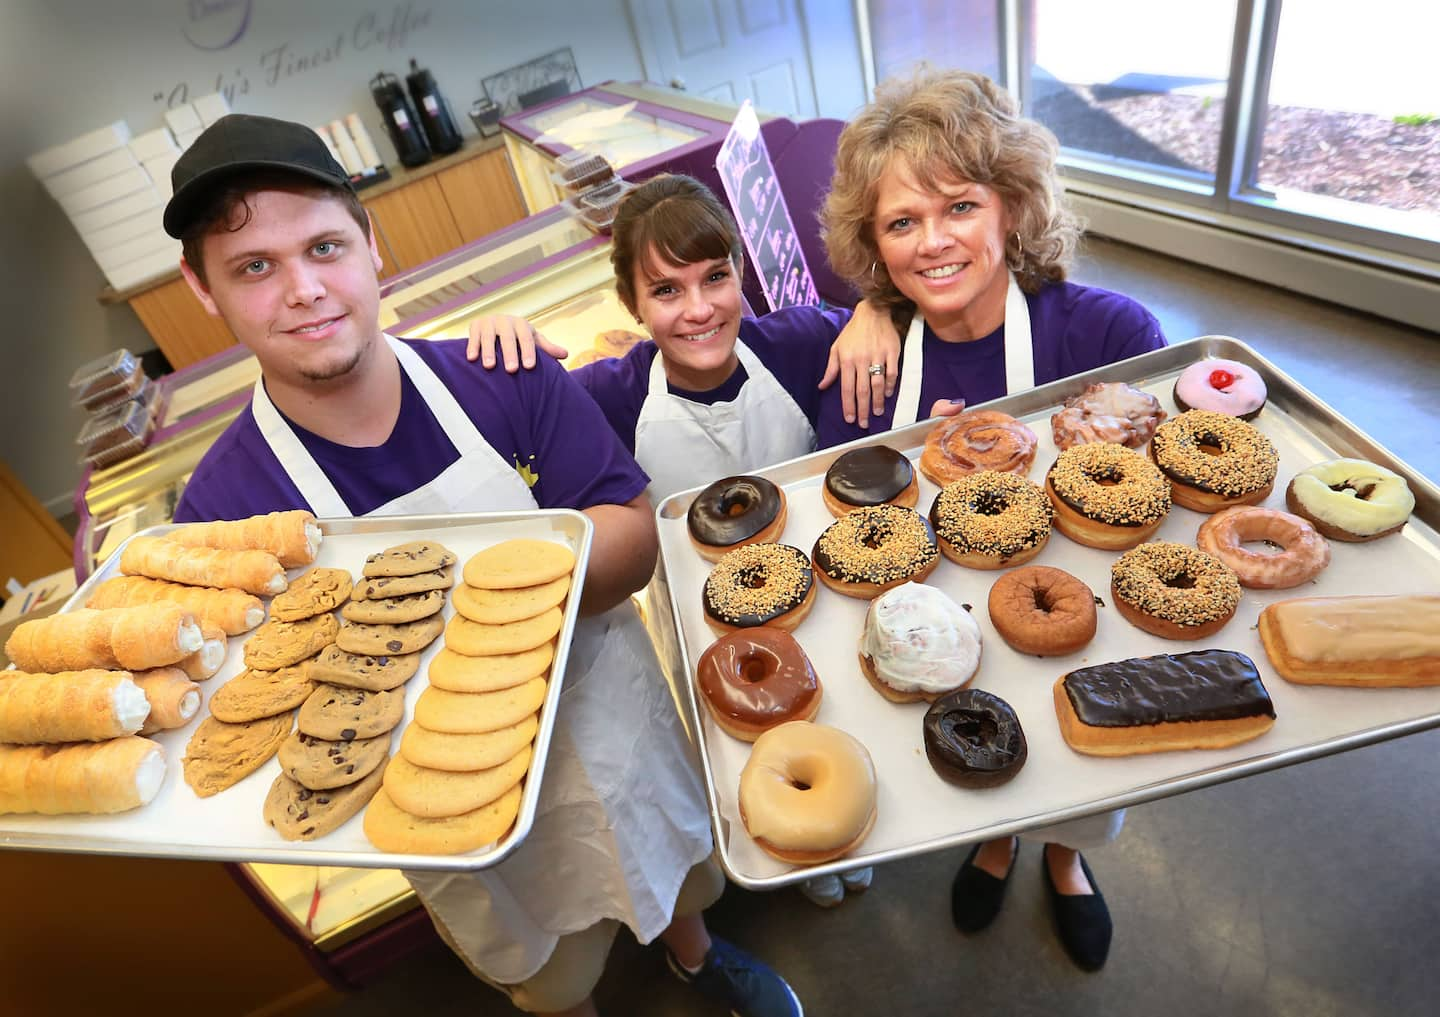 Sweet openings: The newest business in Beech Grove is Regal Donuts & Bakery, located at 624 Main Street. Pictured here, the owners and bakers, (from left) Devon Veerkamp, Rendy Arnold an Judy Veerkamp.